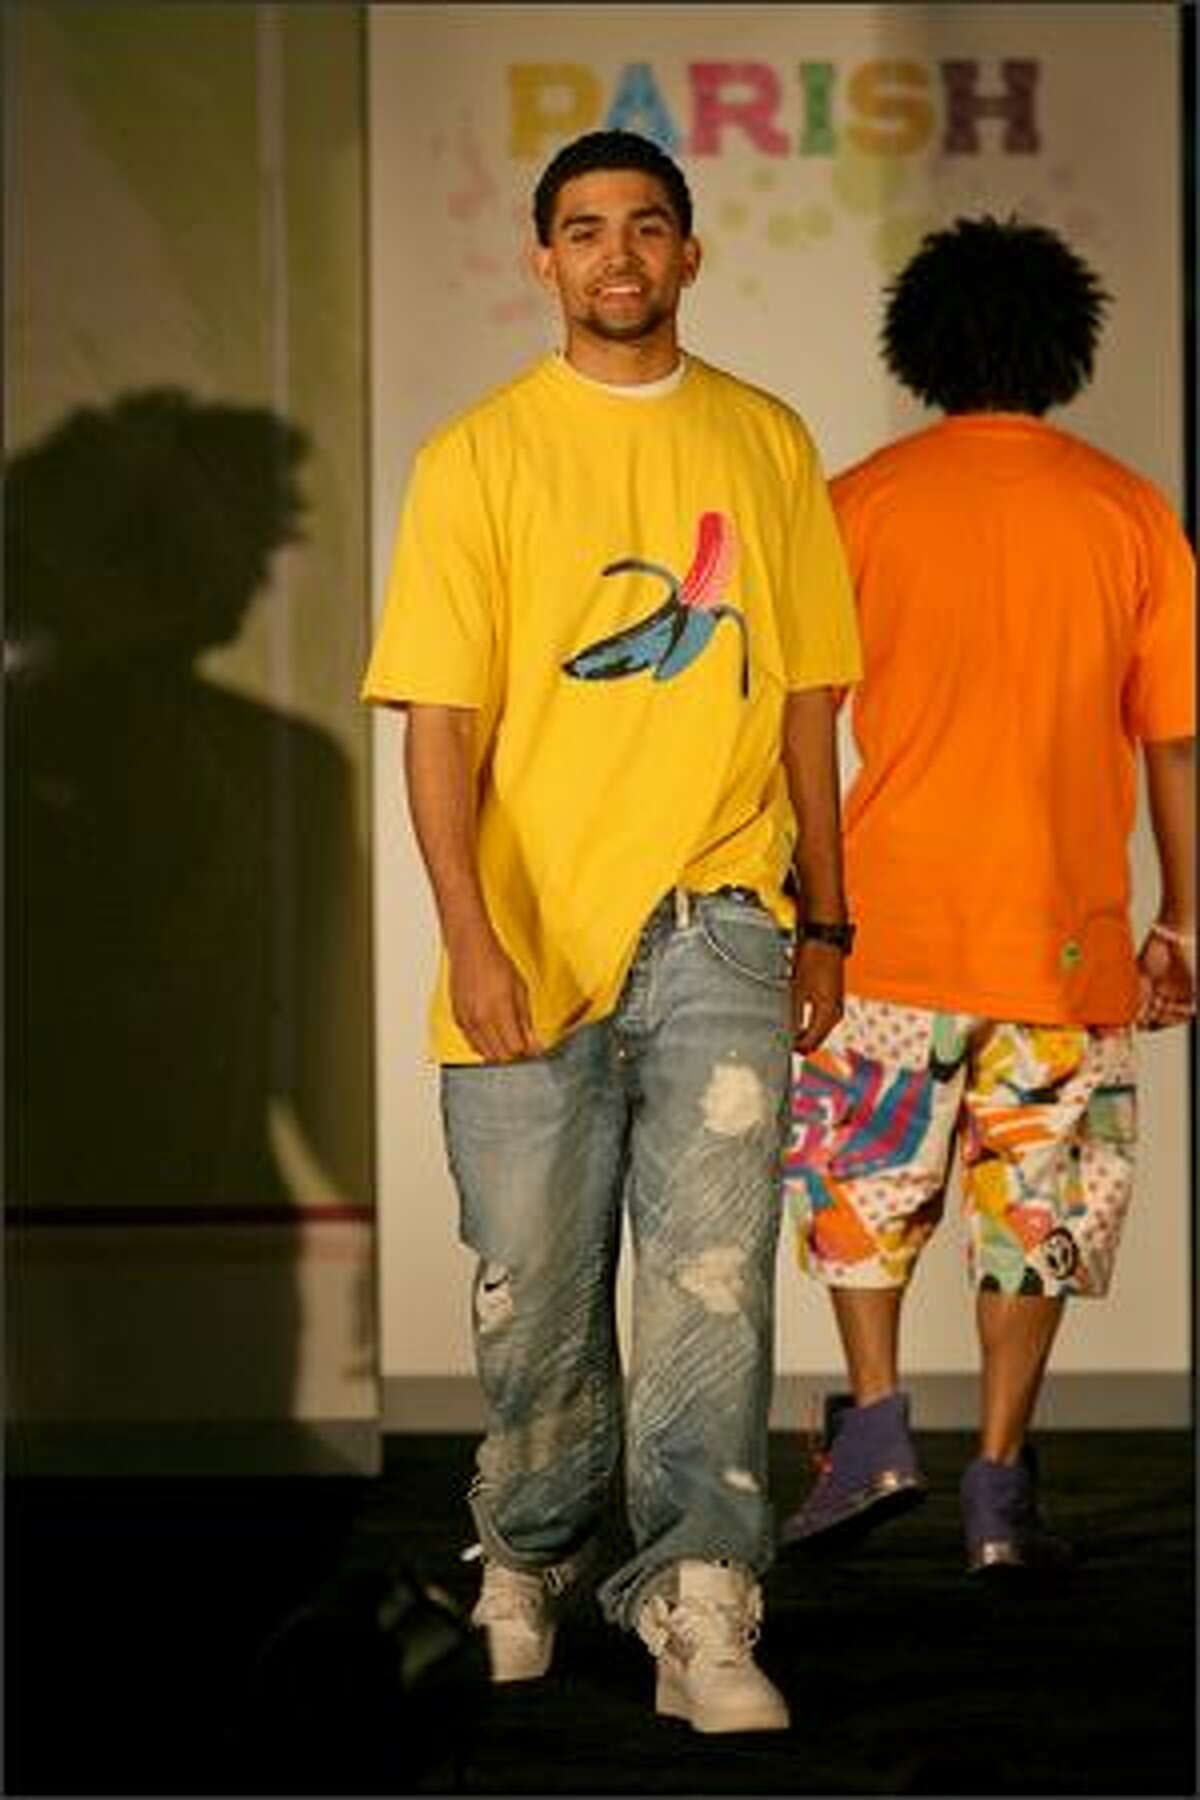 Andrew Powell models the Banana T-Shirt and P-Jeans.